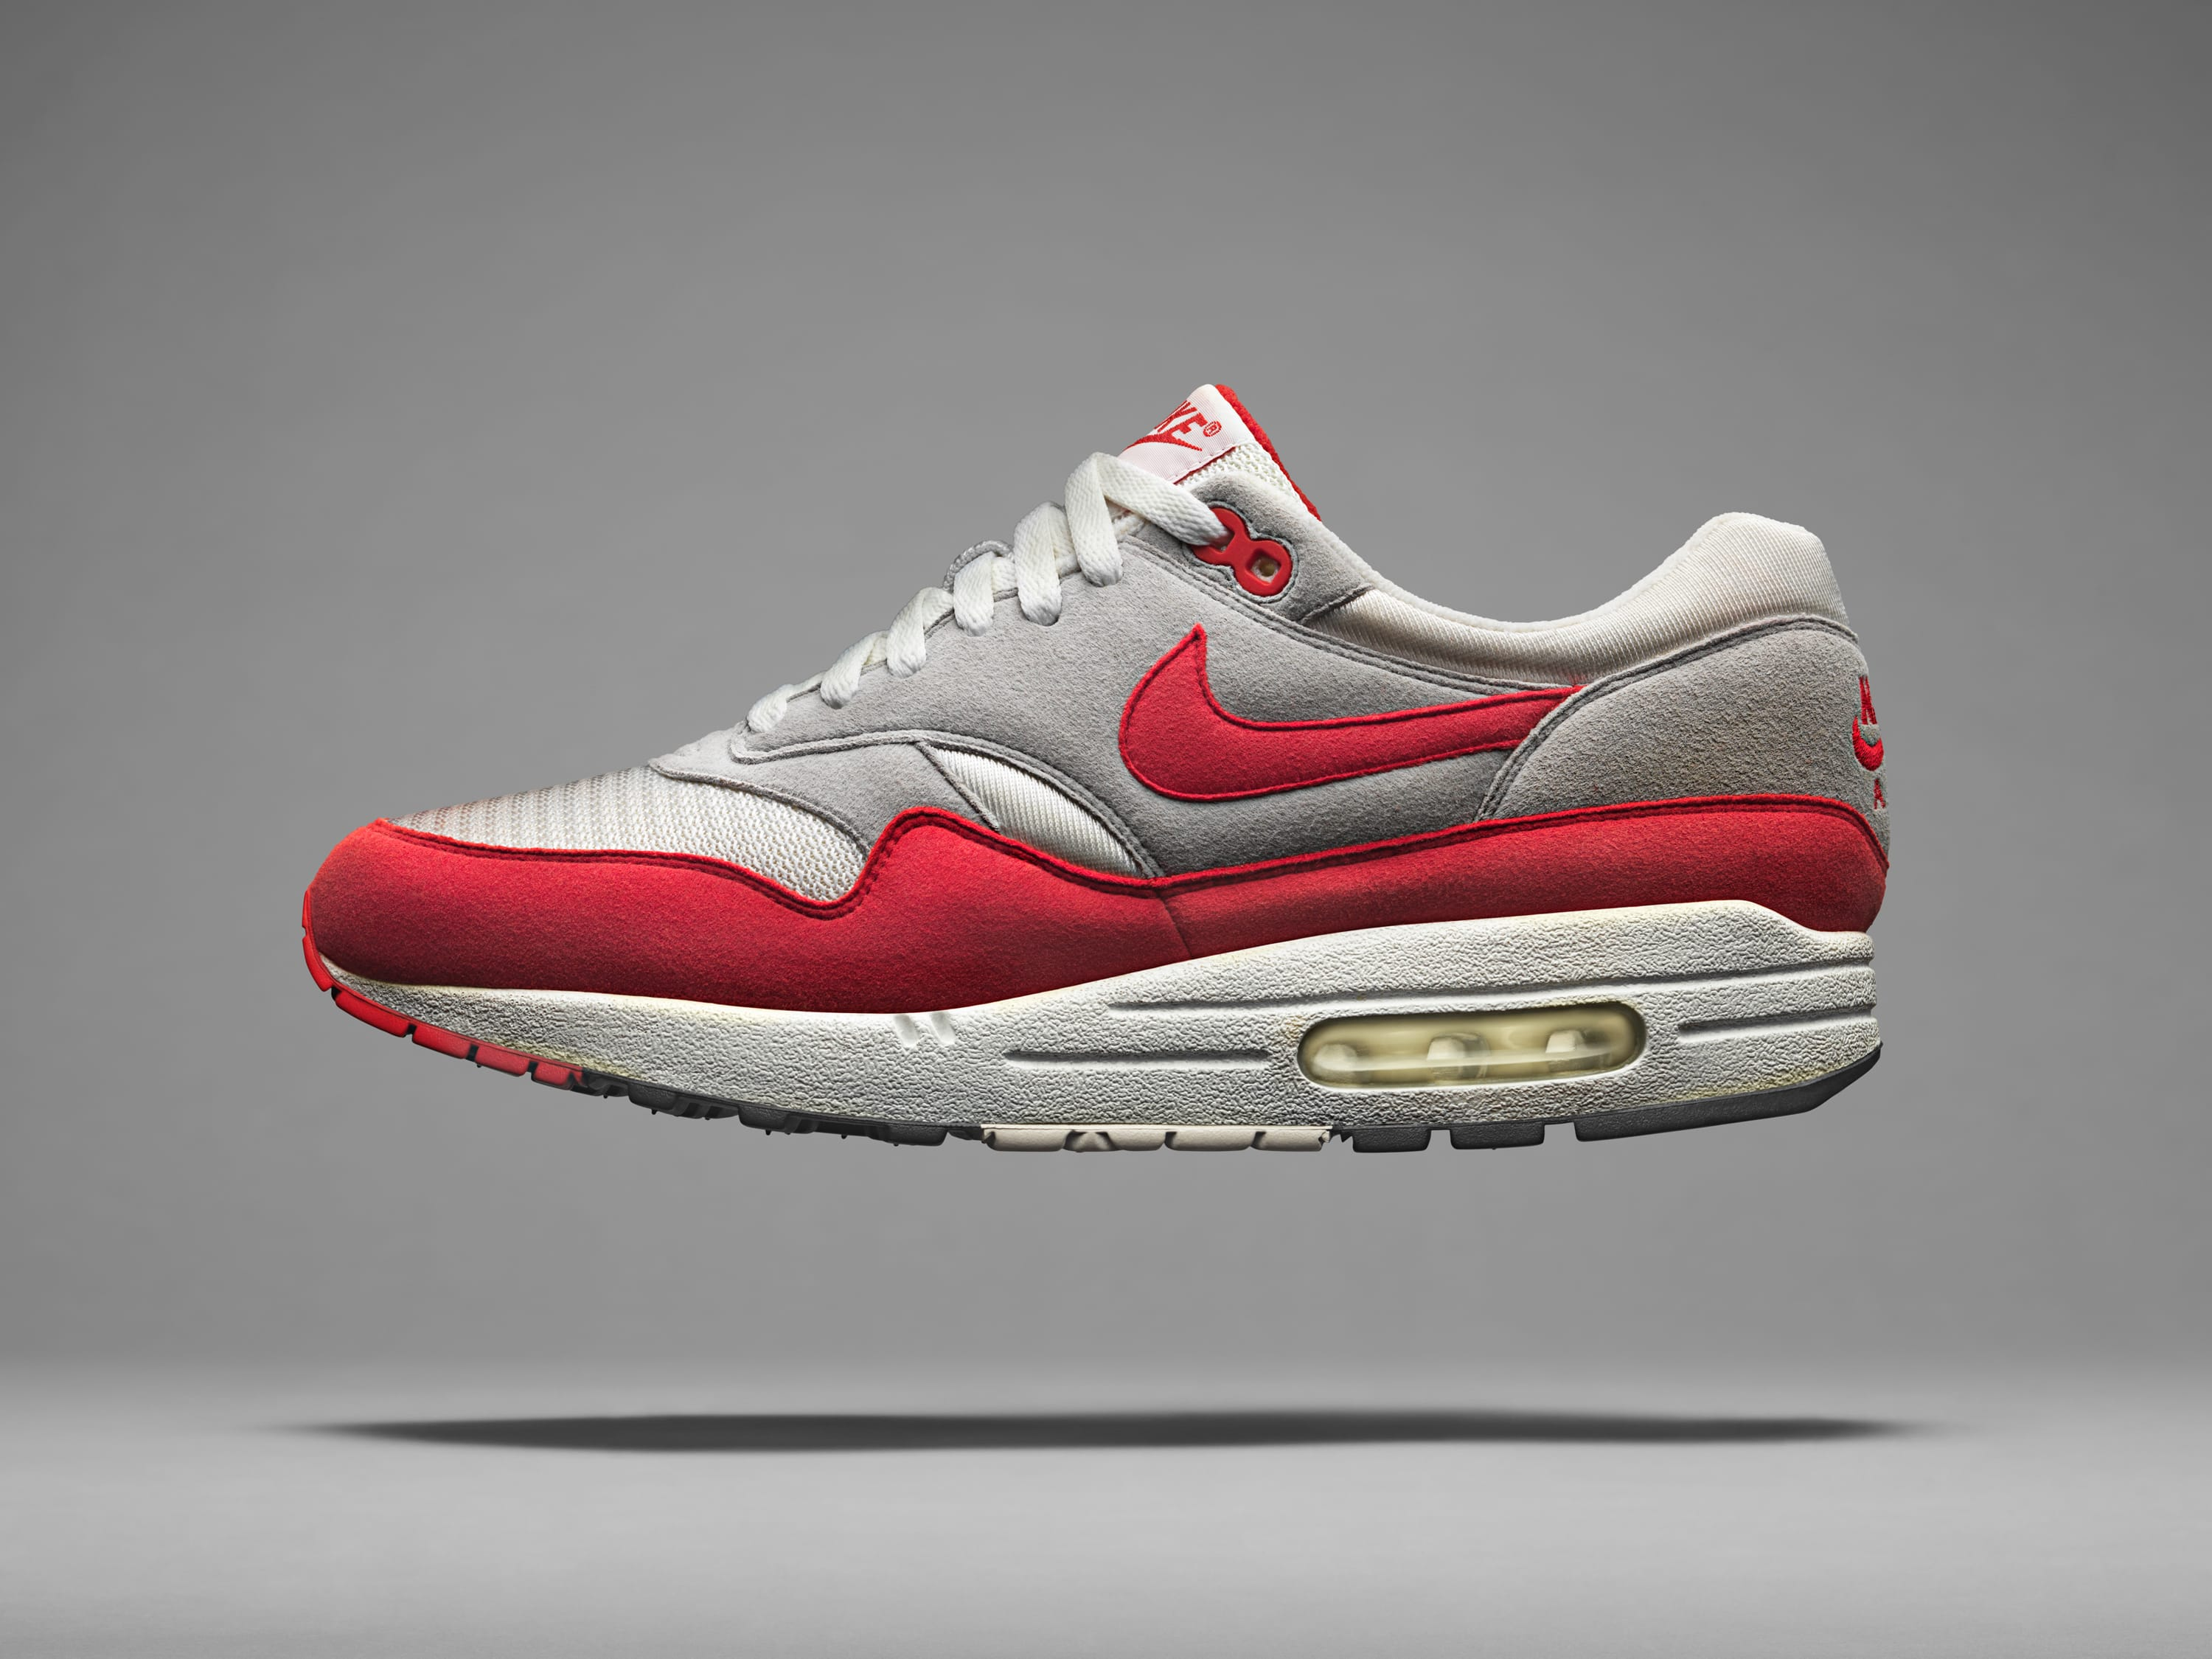 Why The Nike Air Max 1 Is More Important Than The Air Jordan 1